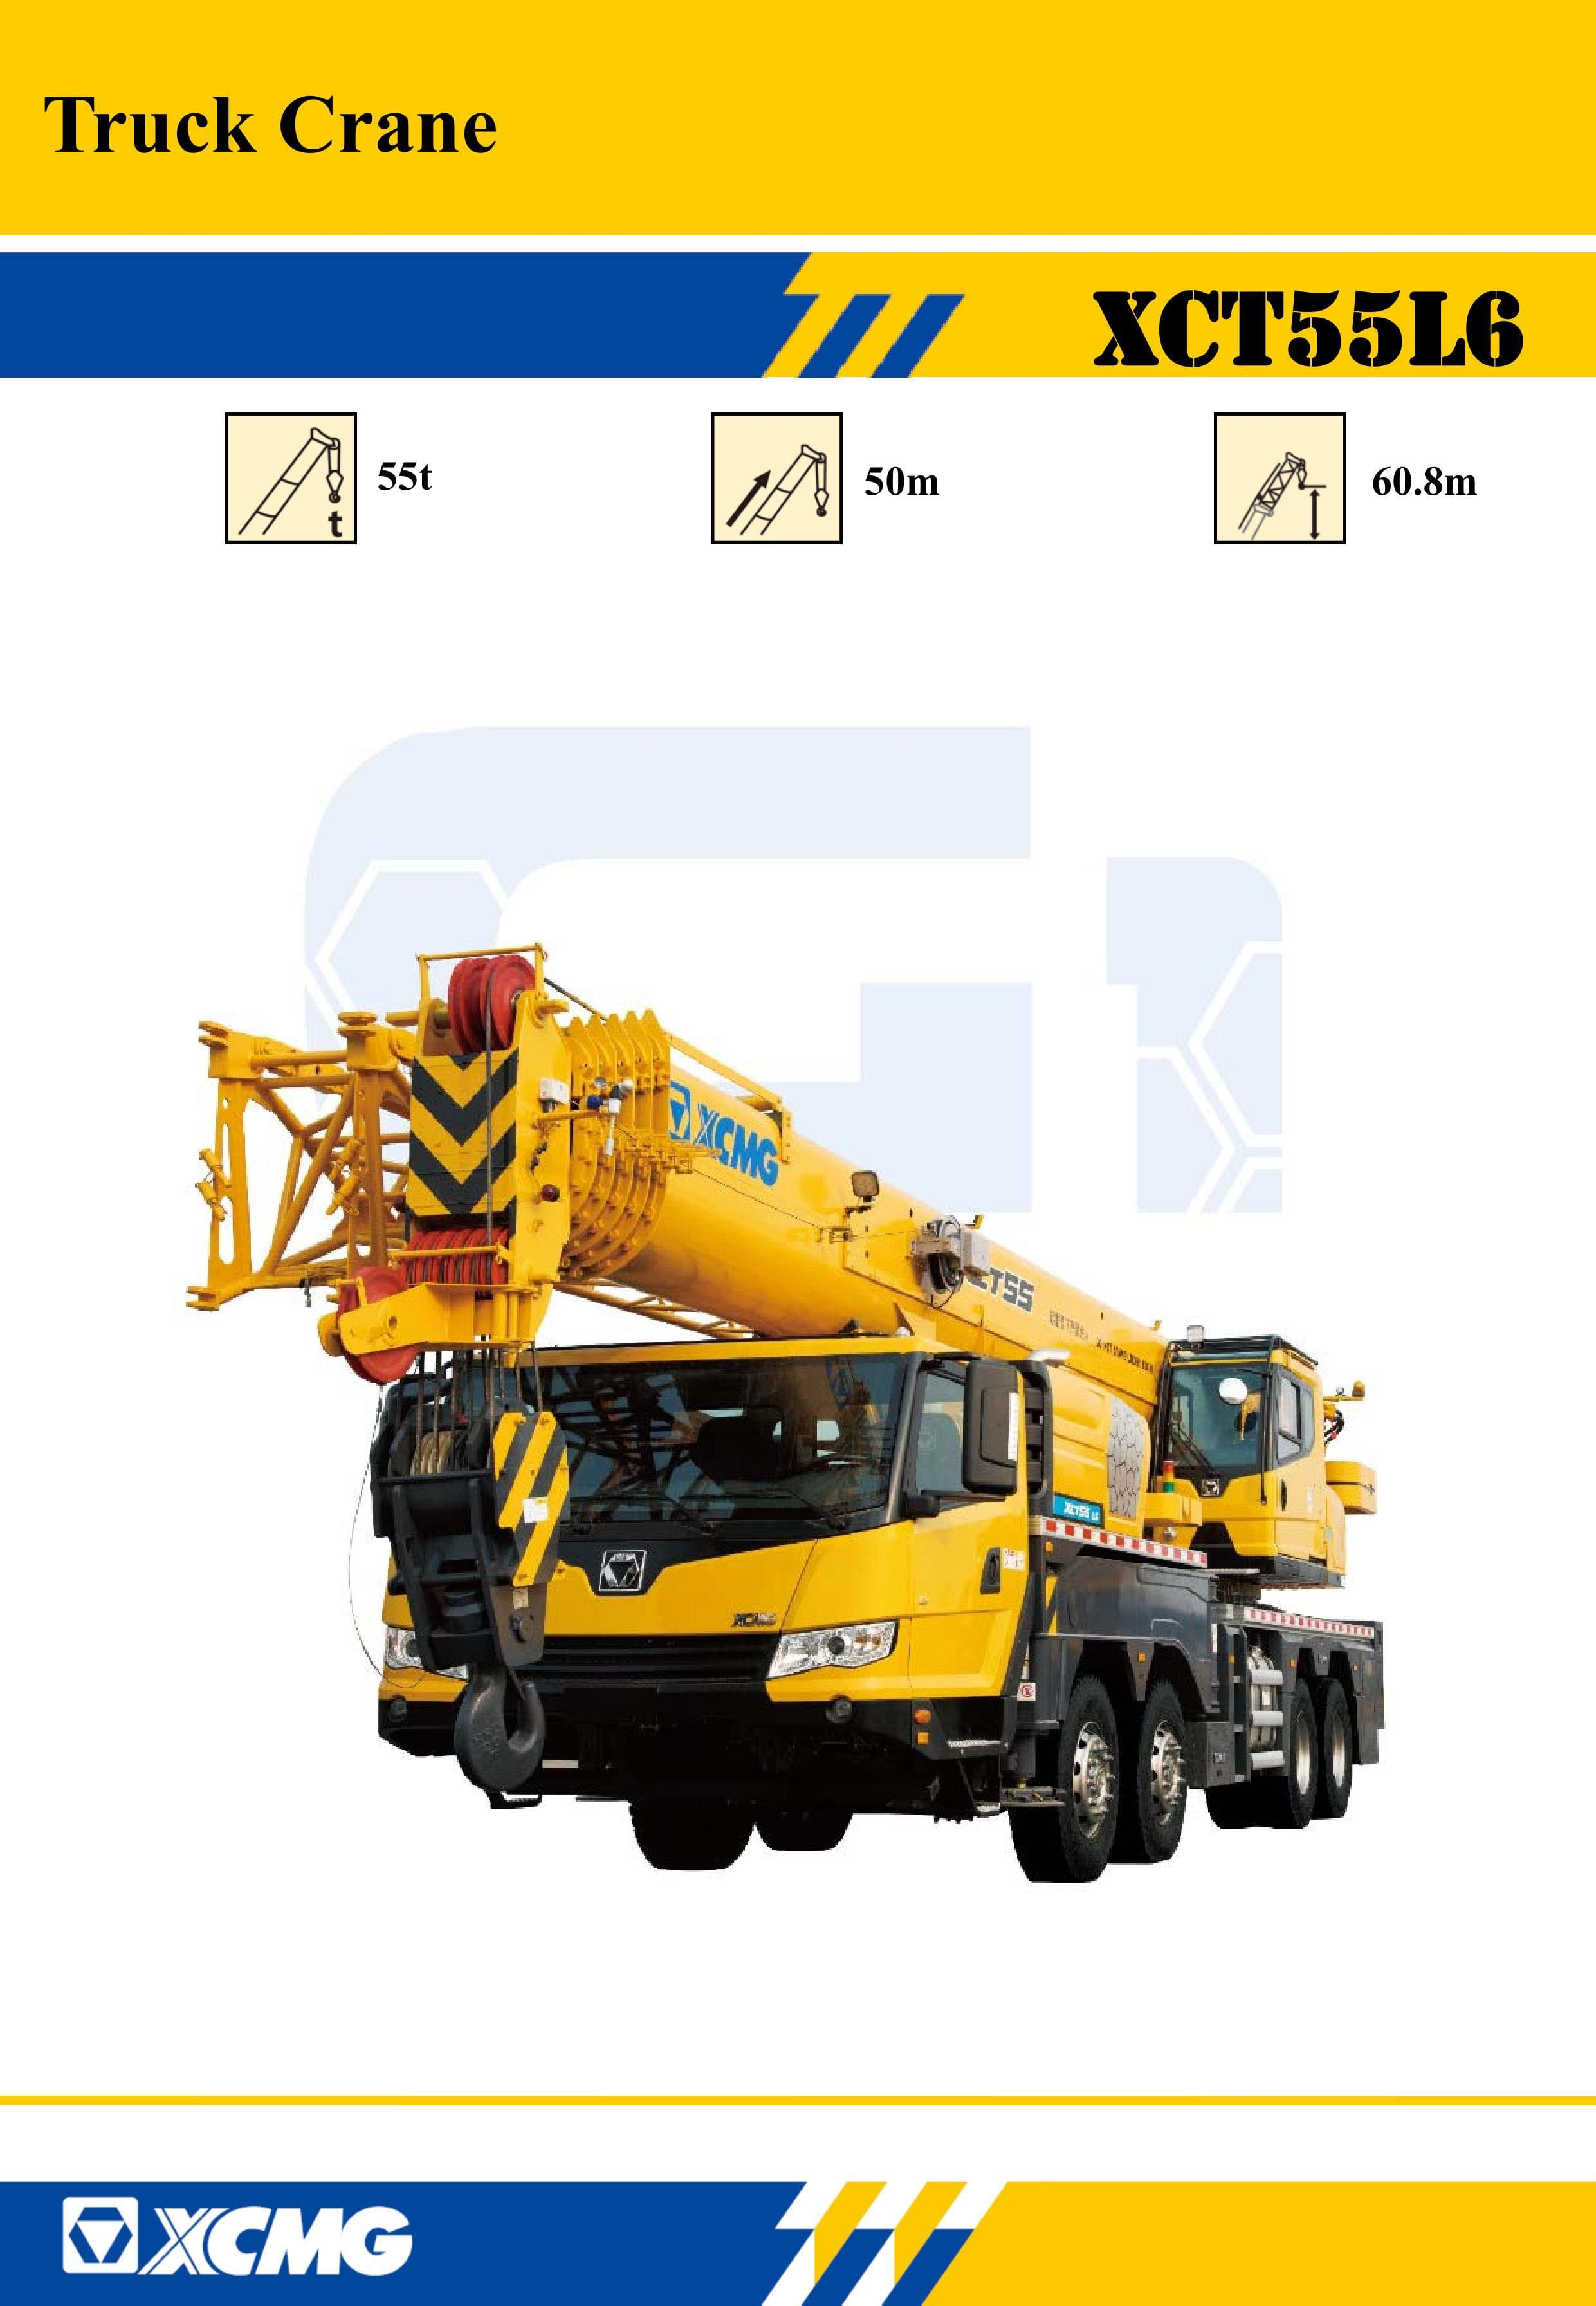 XCMG Oficial XCT55L6 Truck Crane for sale